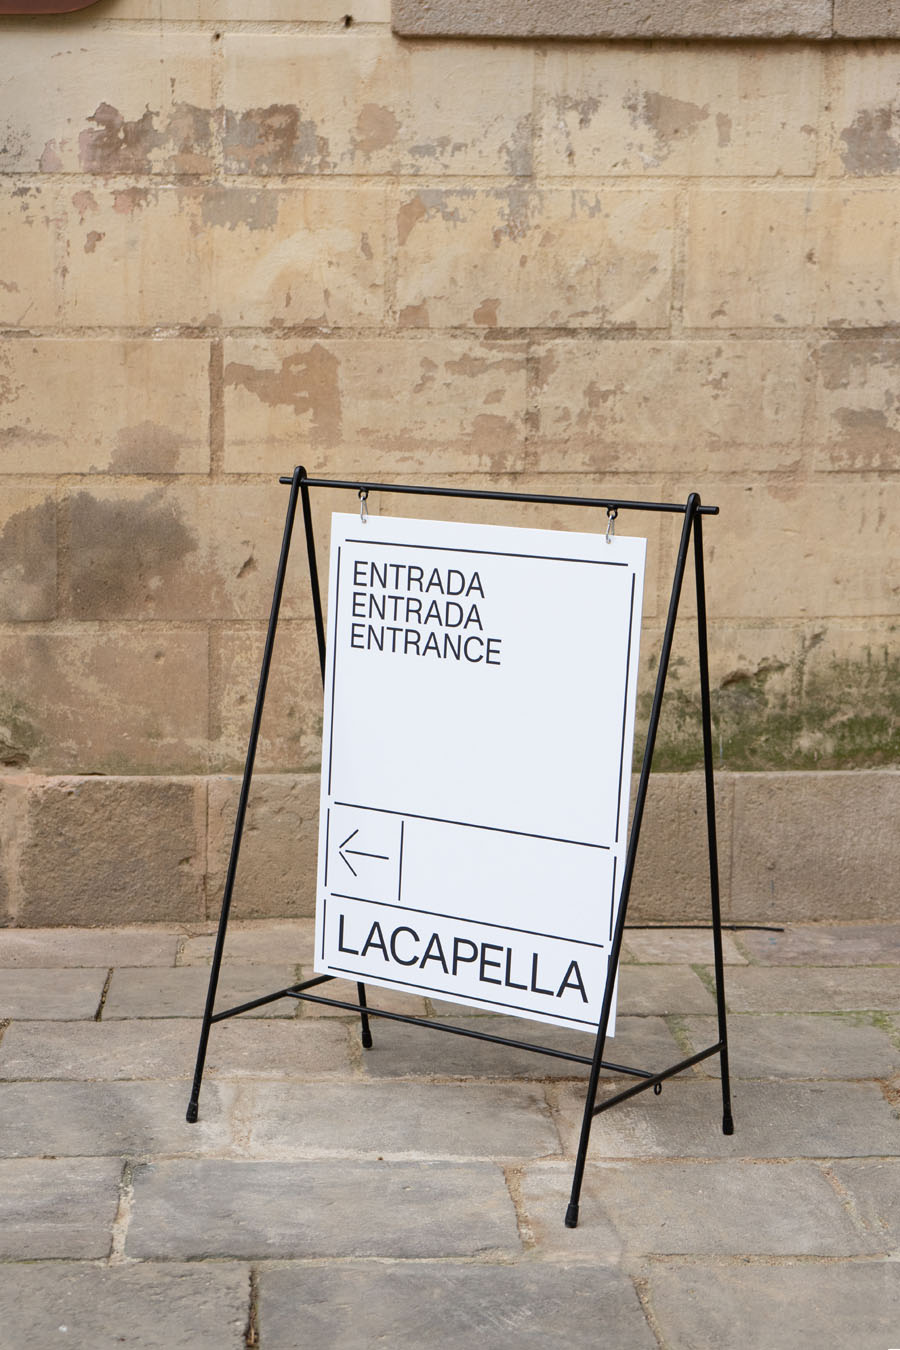 LACAPELLA – defining a new exhibition space |FOLCH